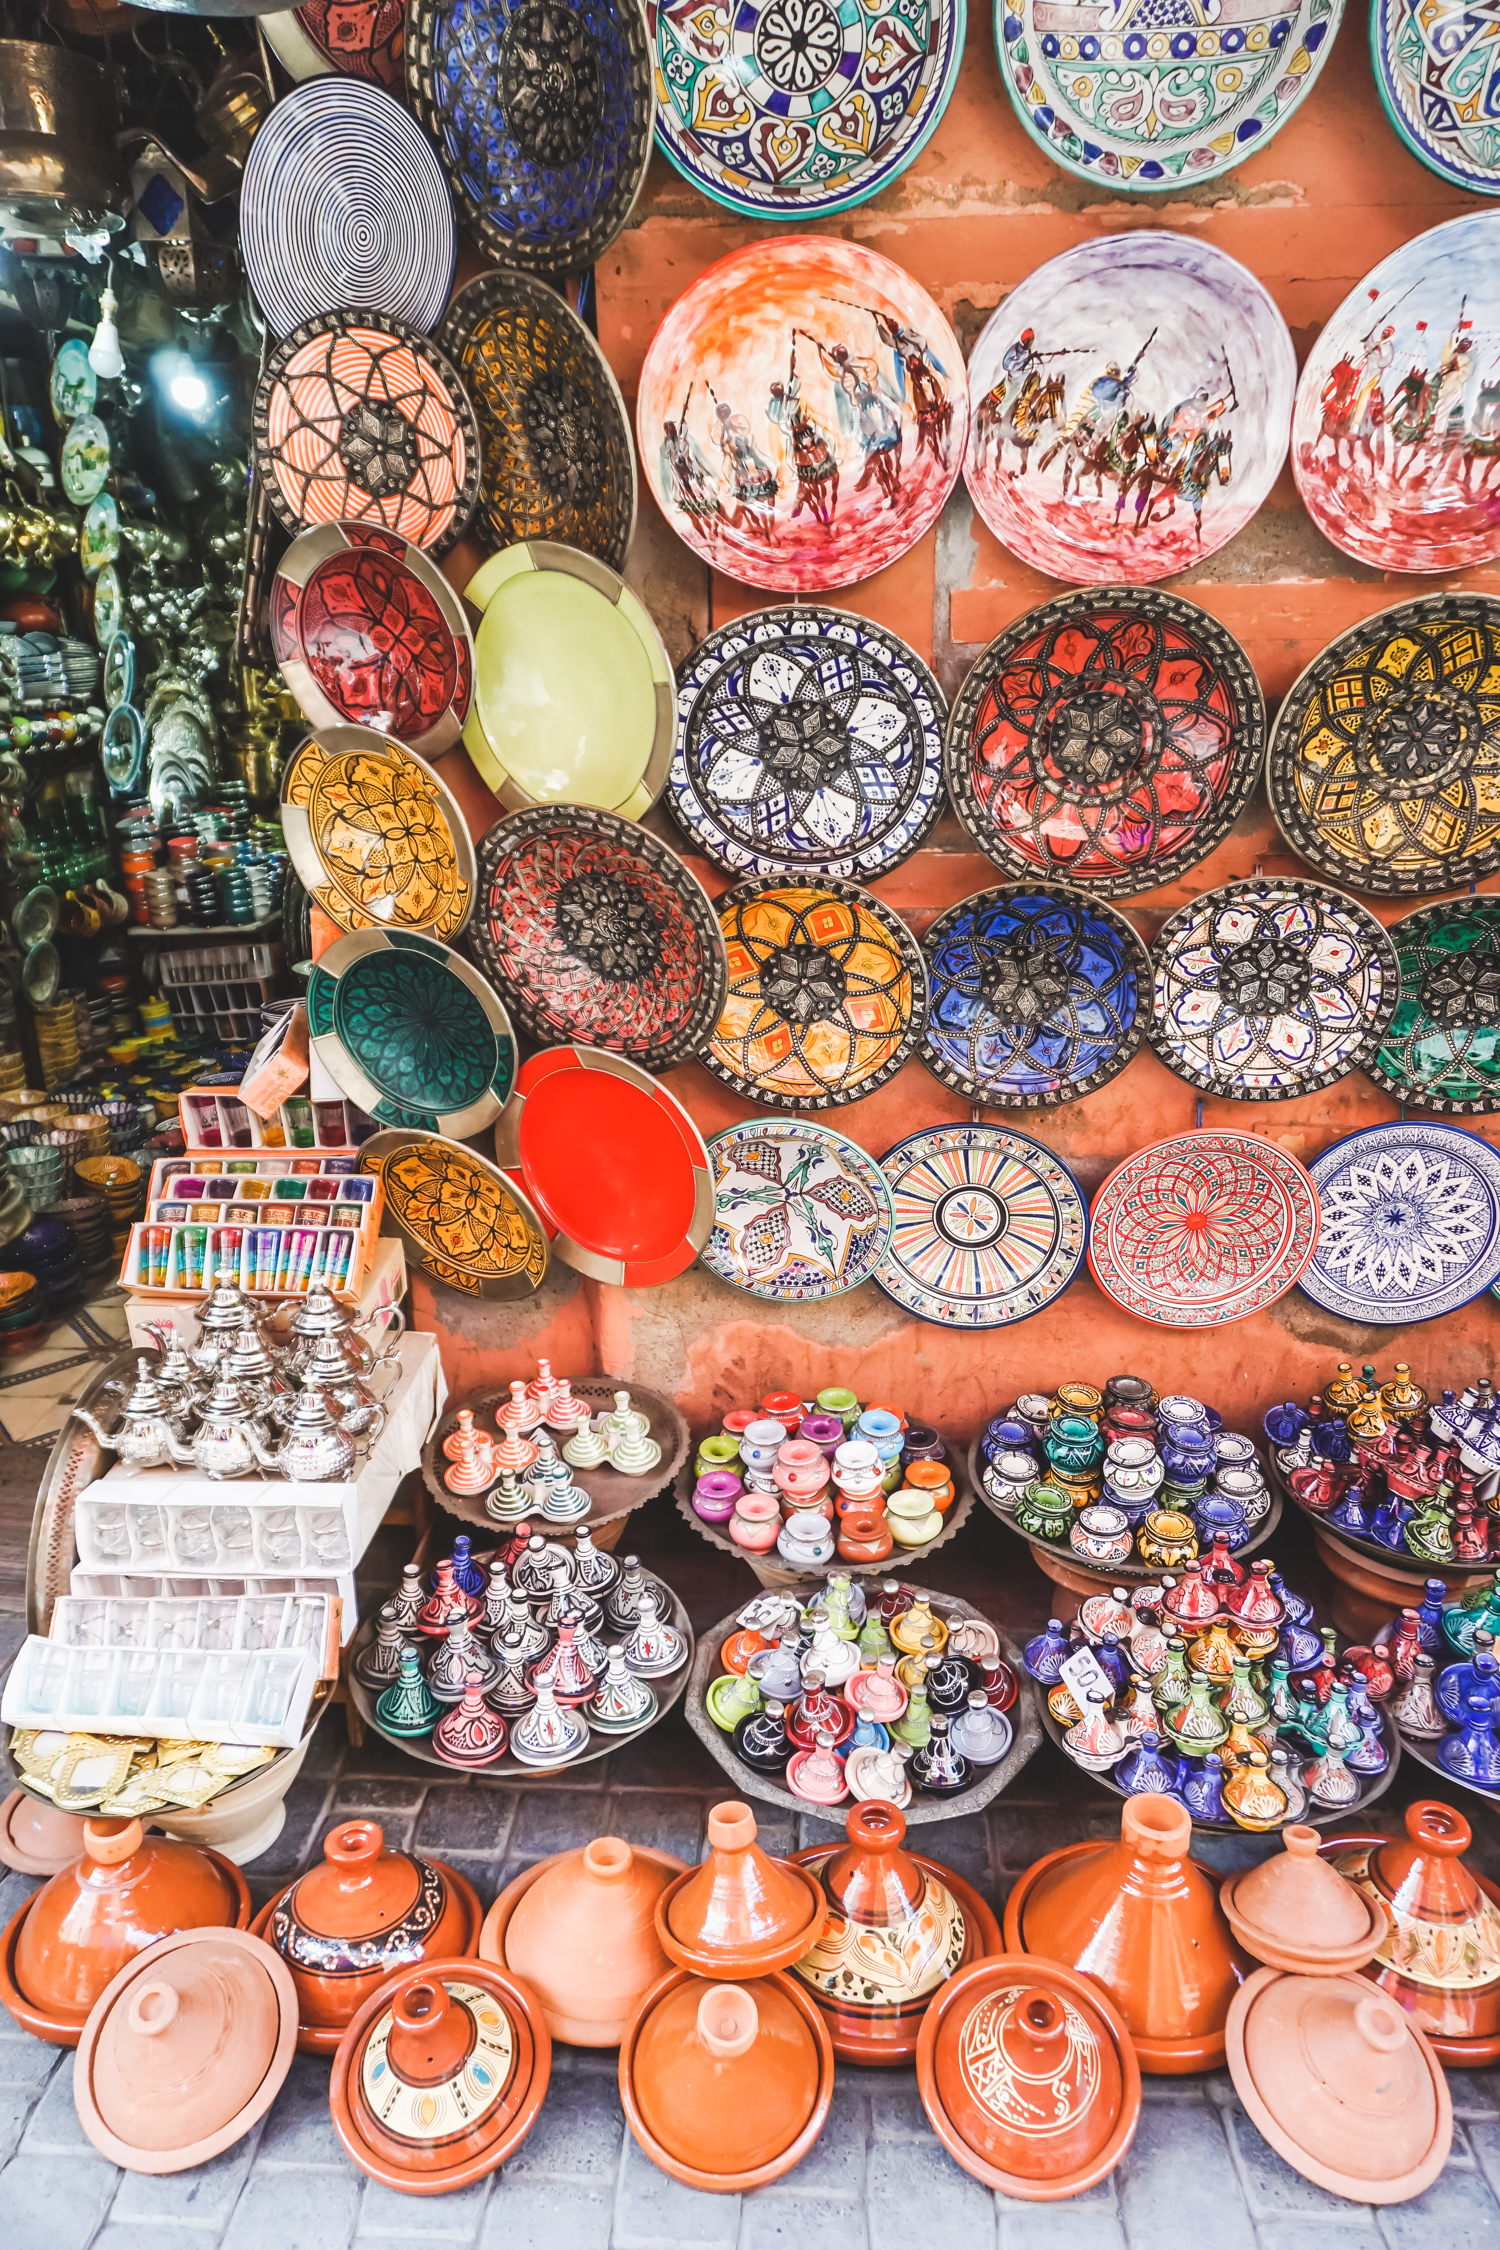 Your Guide to Bargaining in the Souks of Marrakech- Monique McHugh Blog  #marrakech #moroccotravel